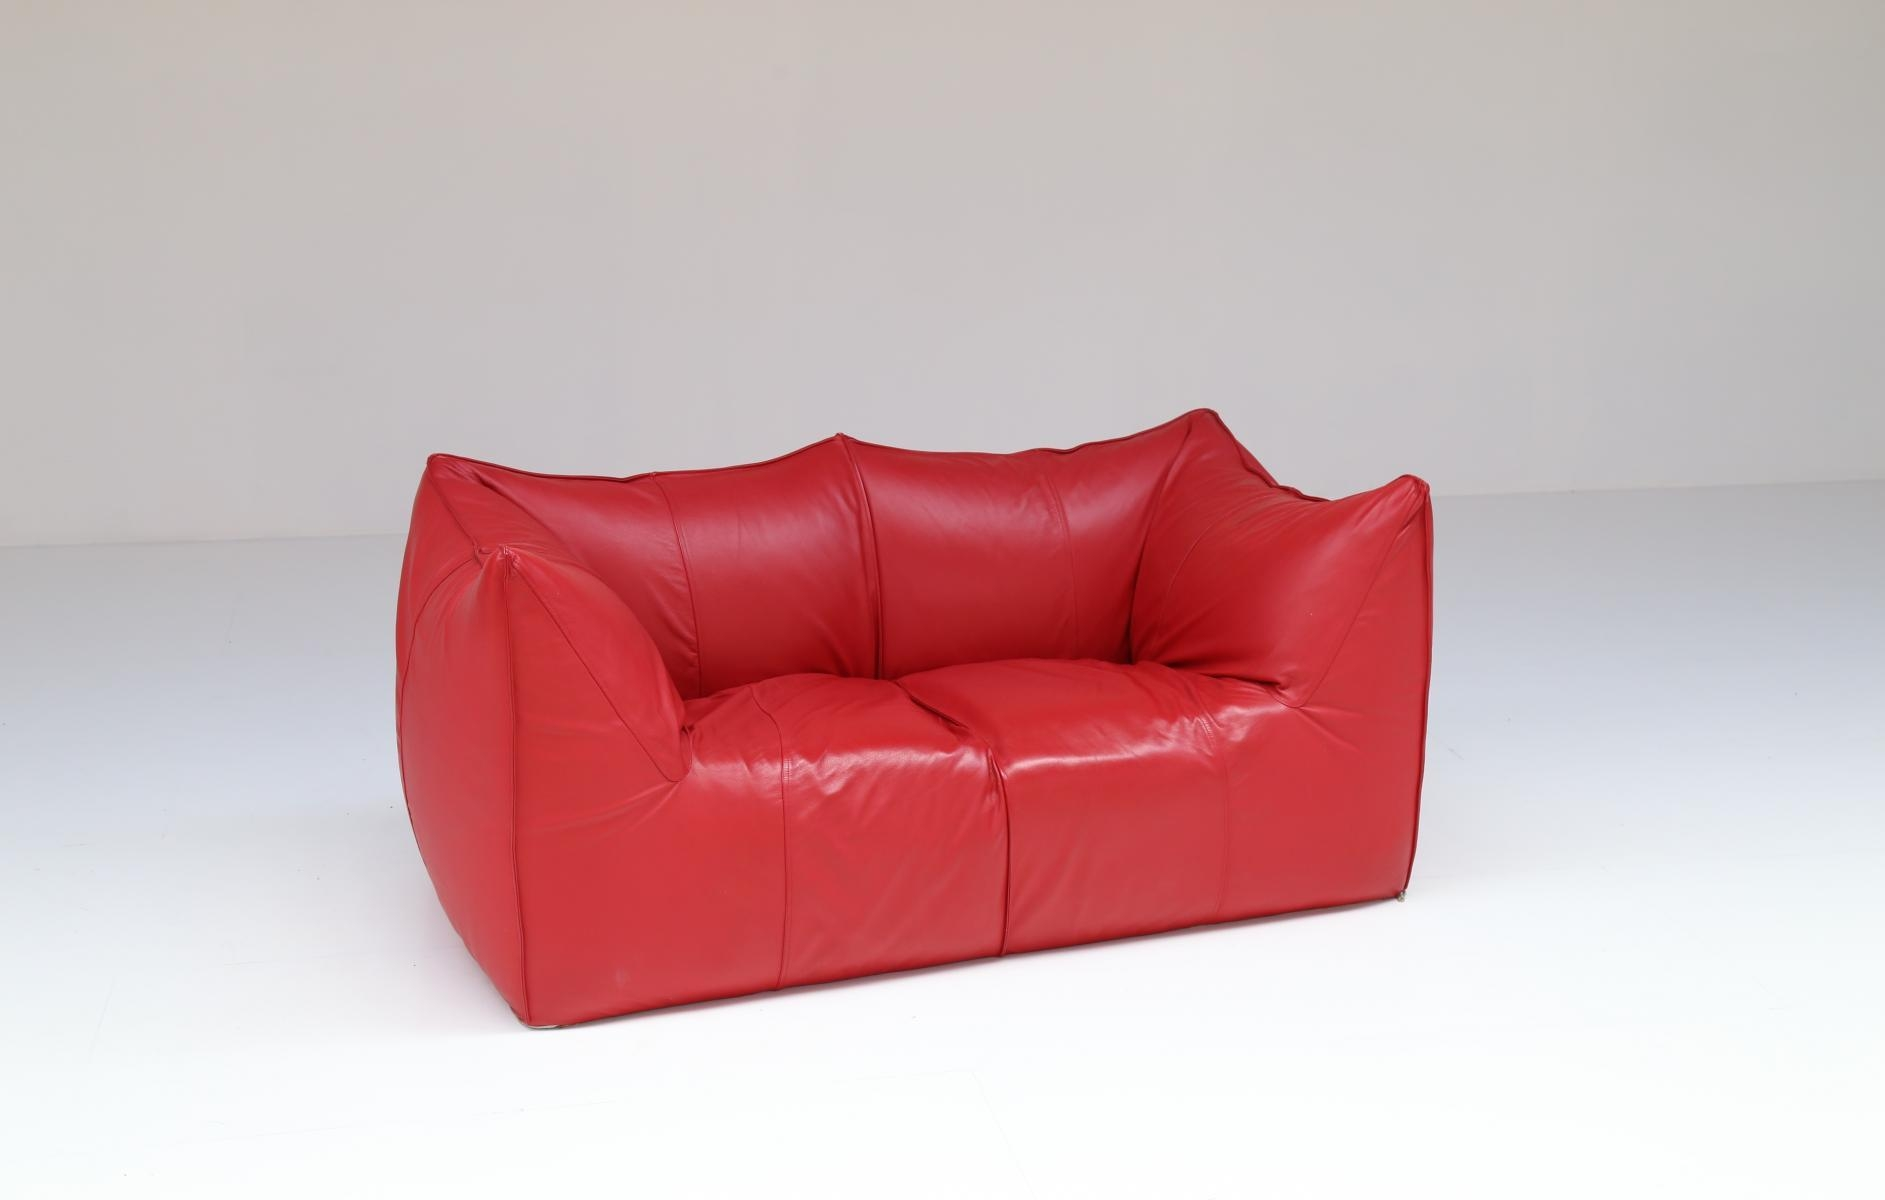 La Bambole Sofamario Bellini For B&b Italia For Sale At Pamono Throughout Bellini Sofas (View 10 of 20)